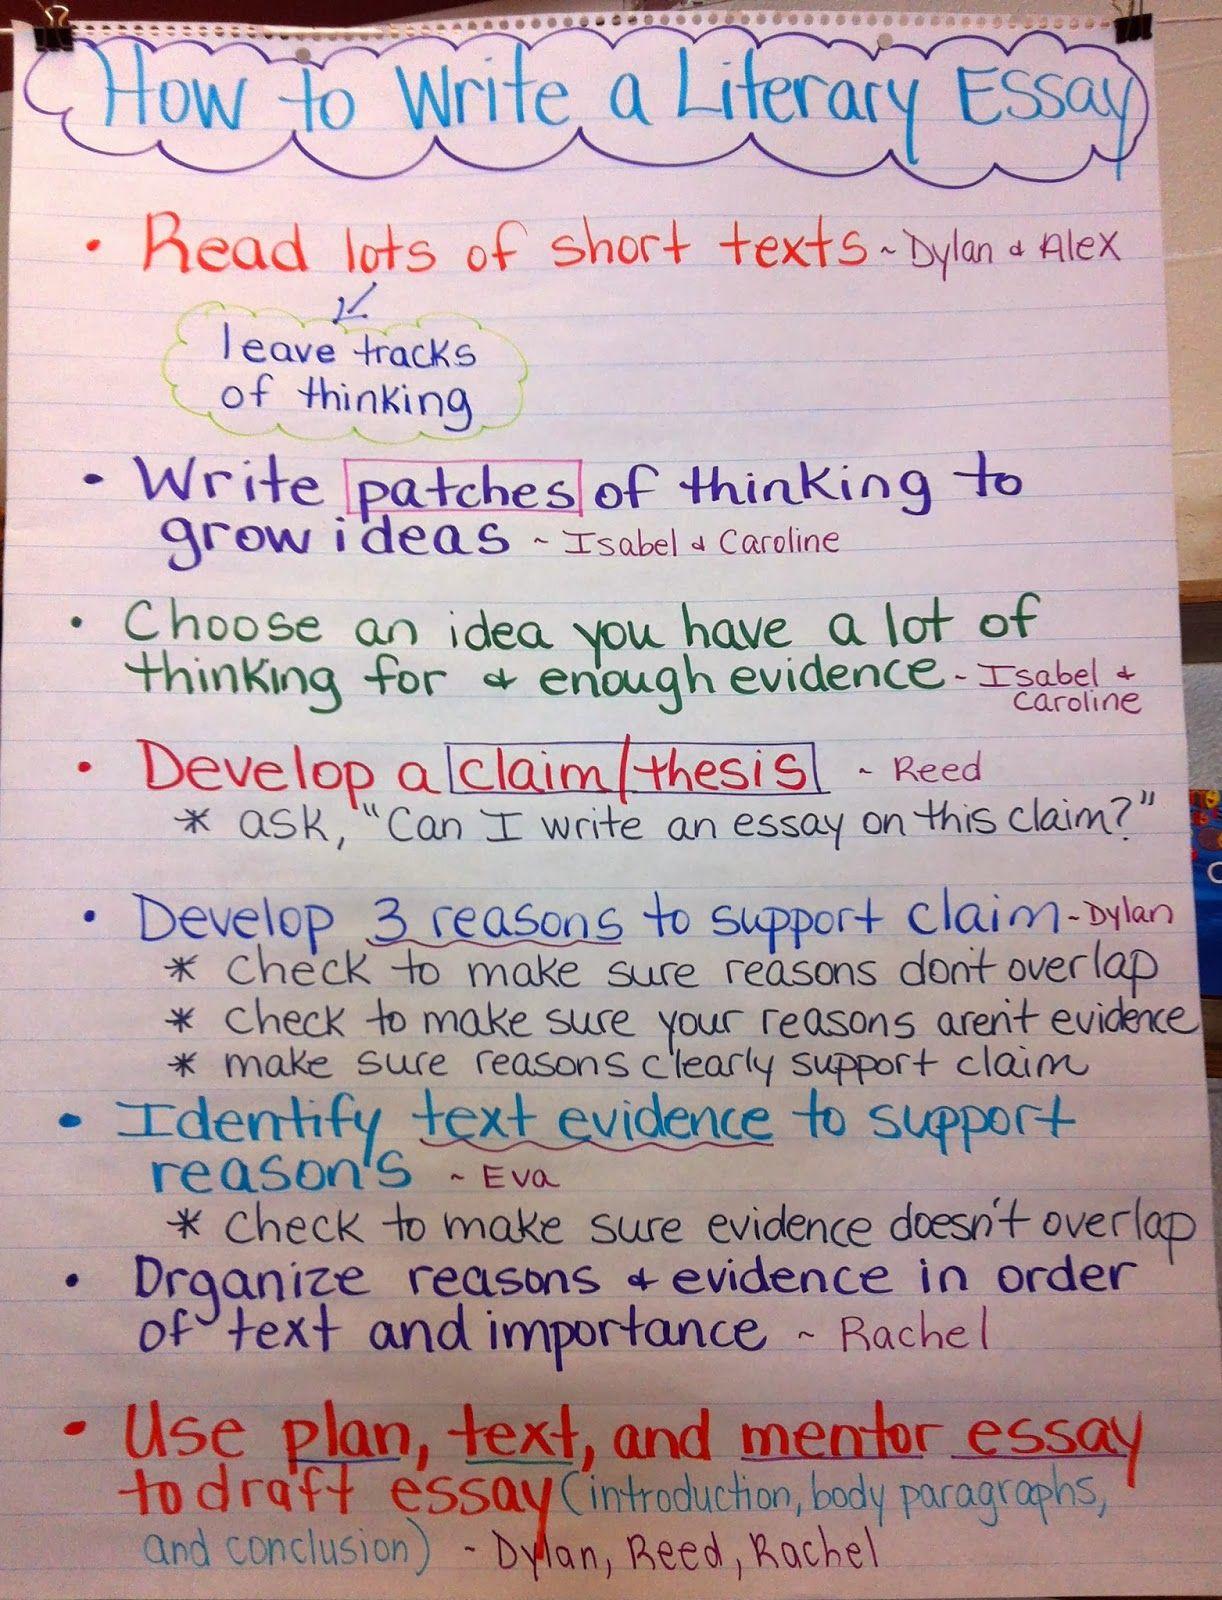 Writing a literary essay